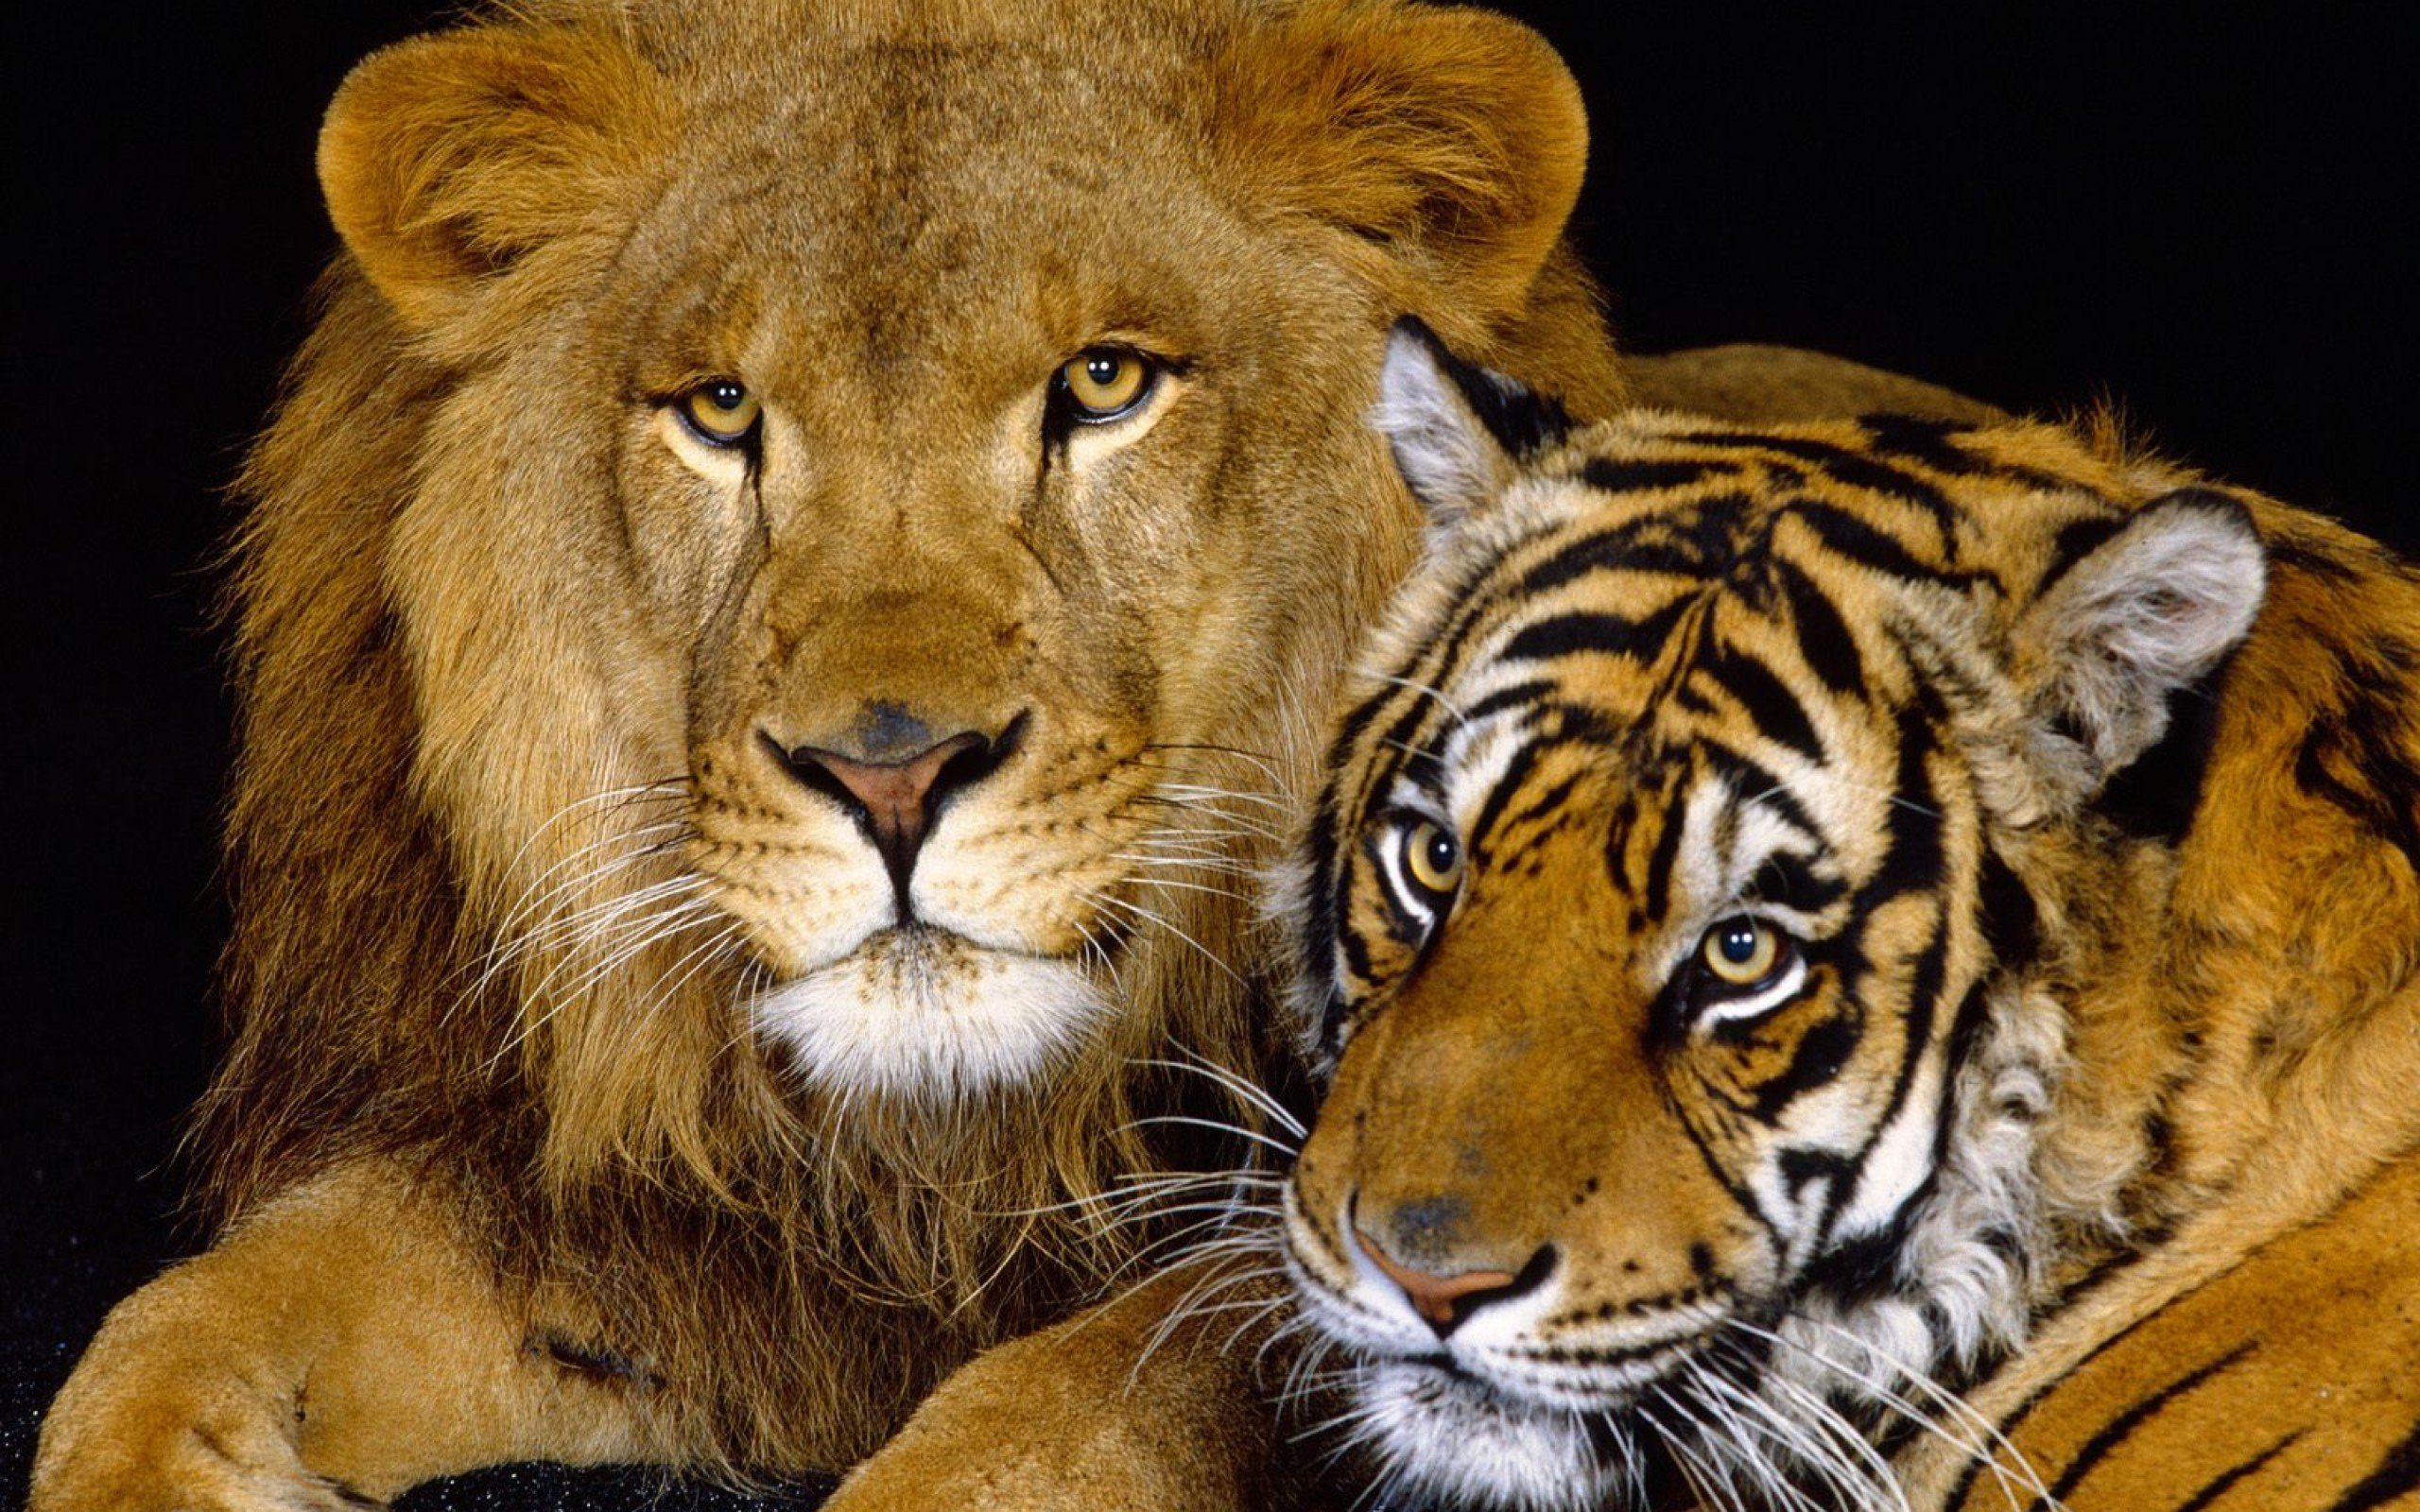 tiger and lion wallpaper #5